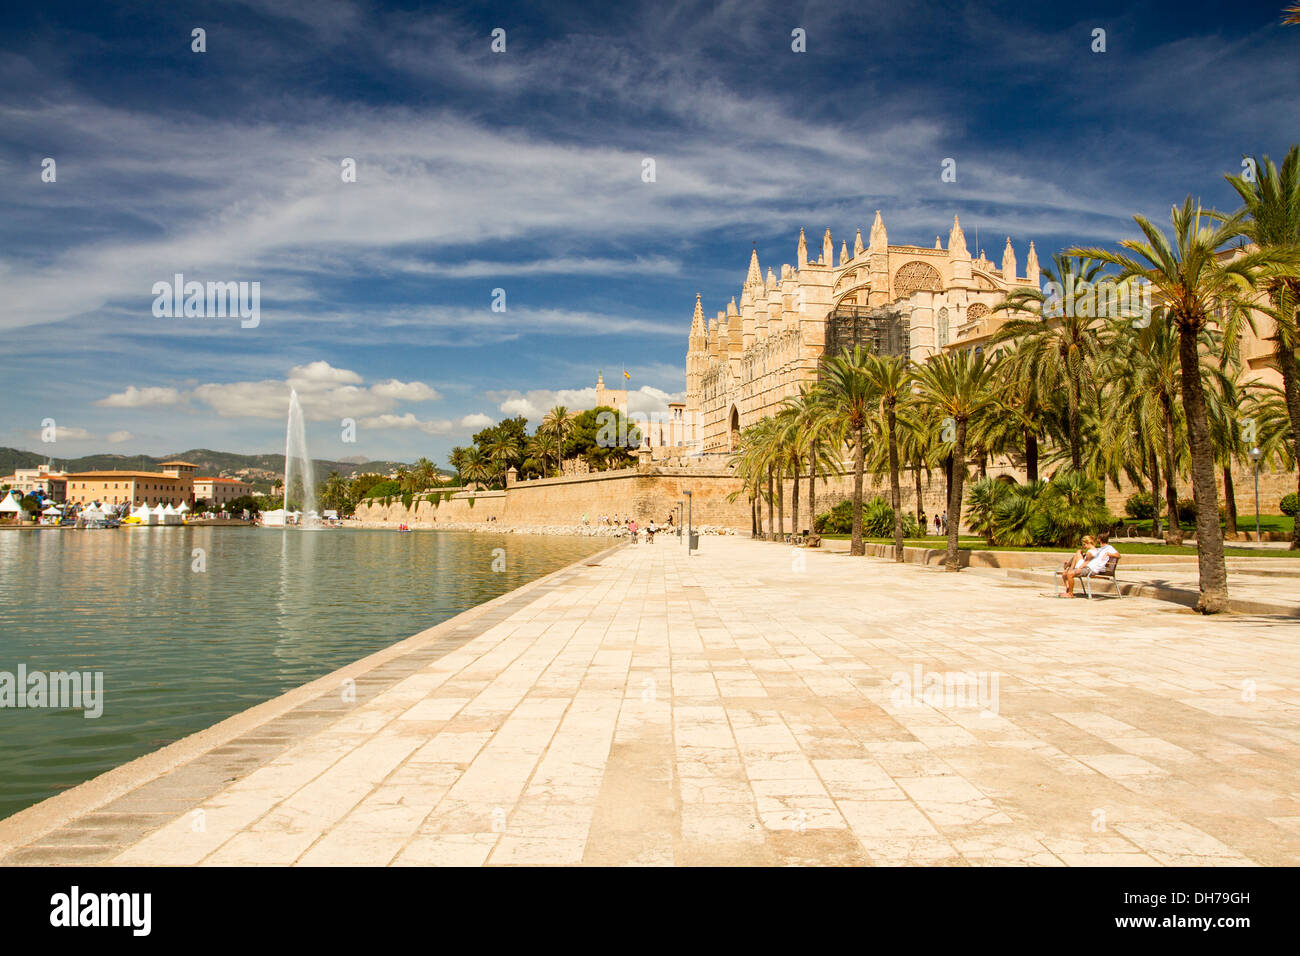 La Seu Cathedral, Palma de Mallorca, Balearic Islands, Spain. - Stock Image